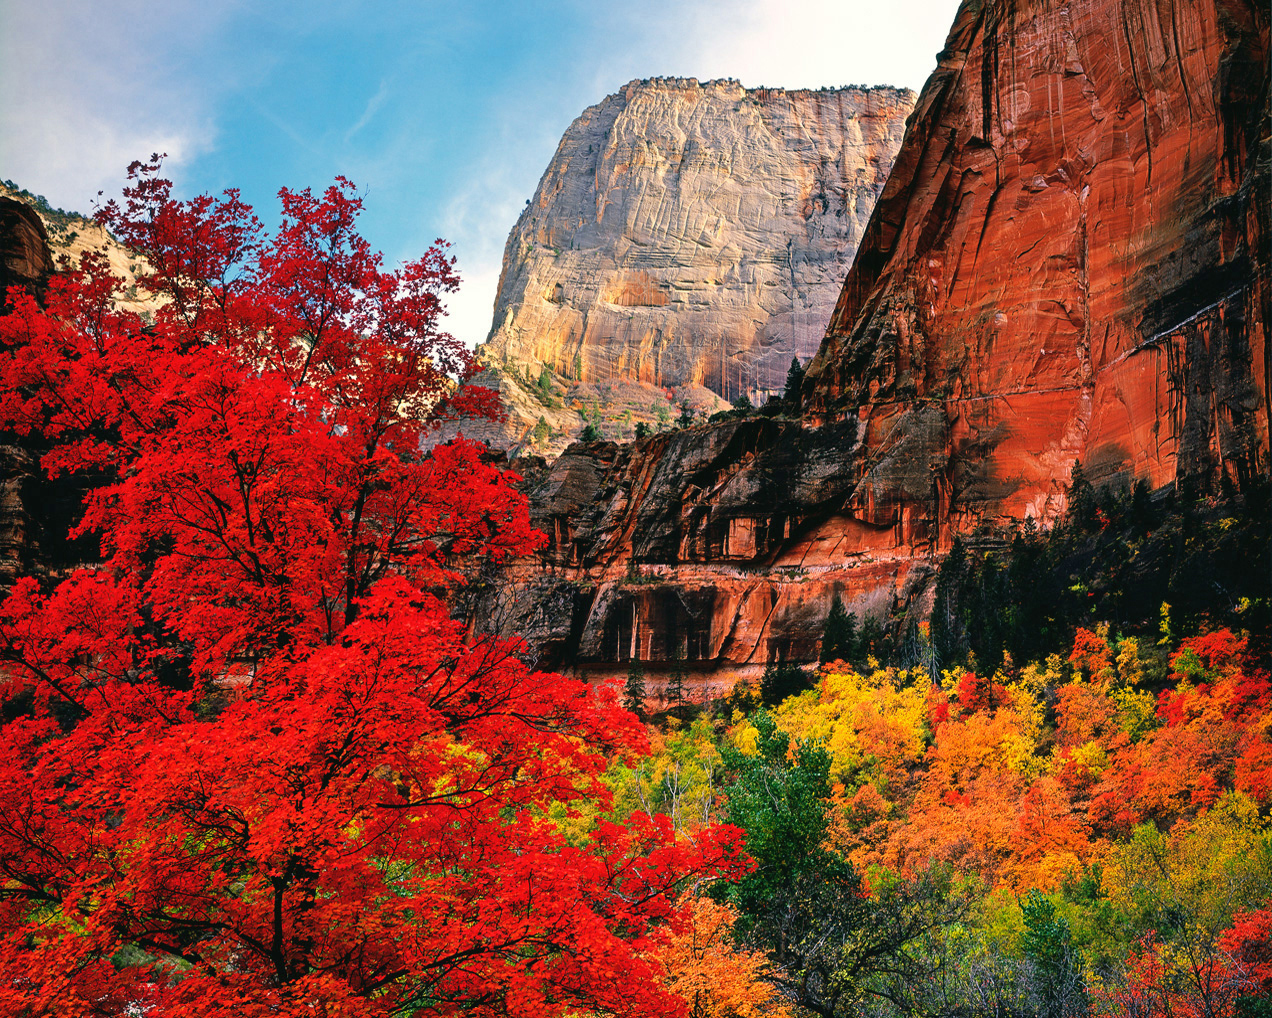 Off-season fall trees photograph in Zion Canyon